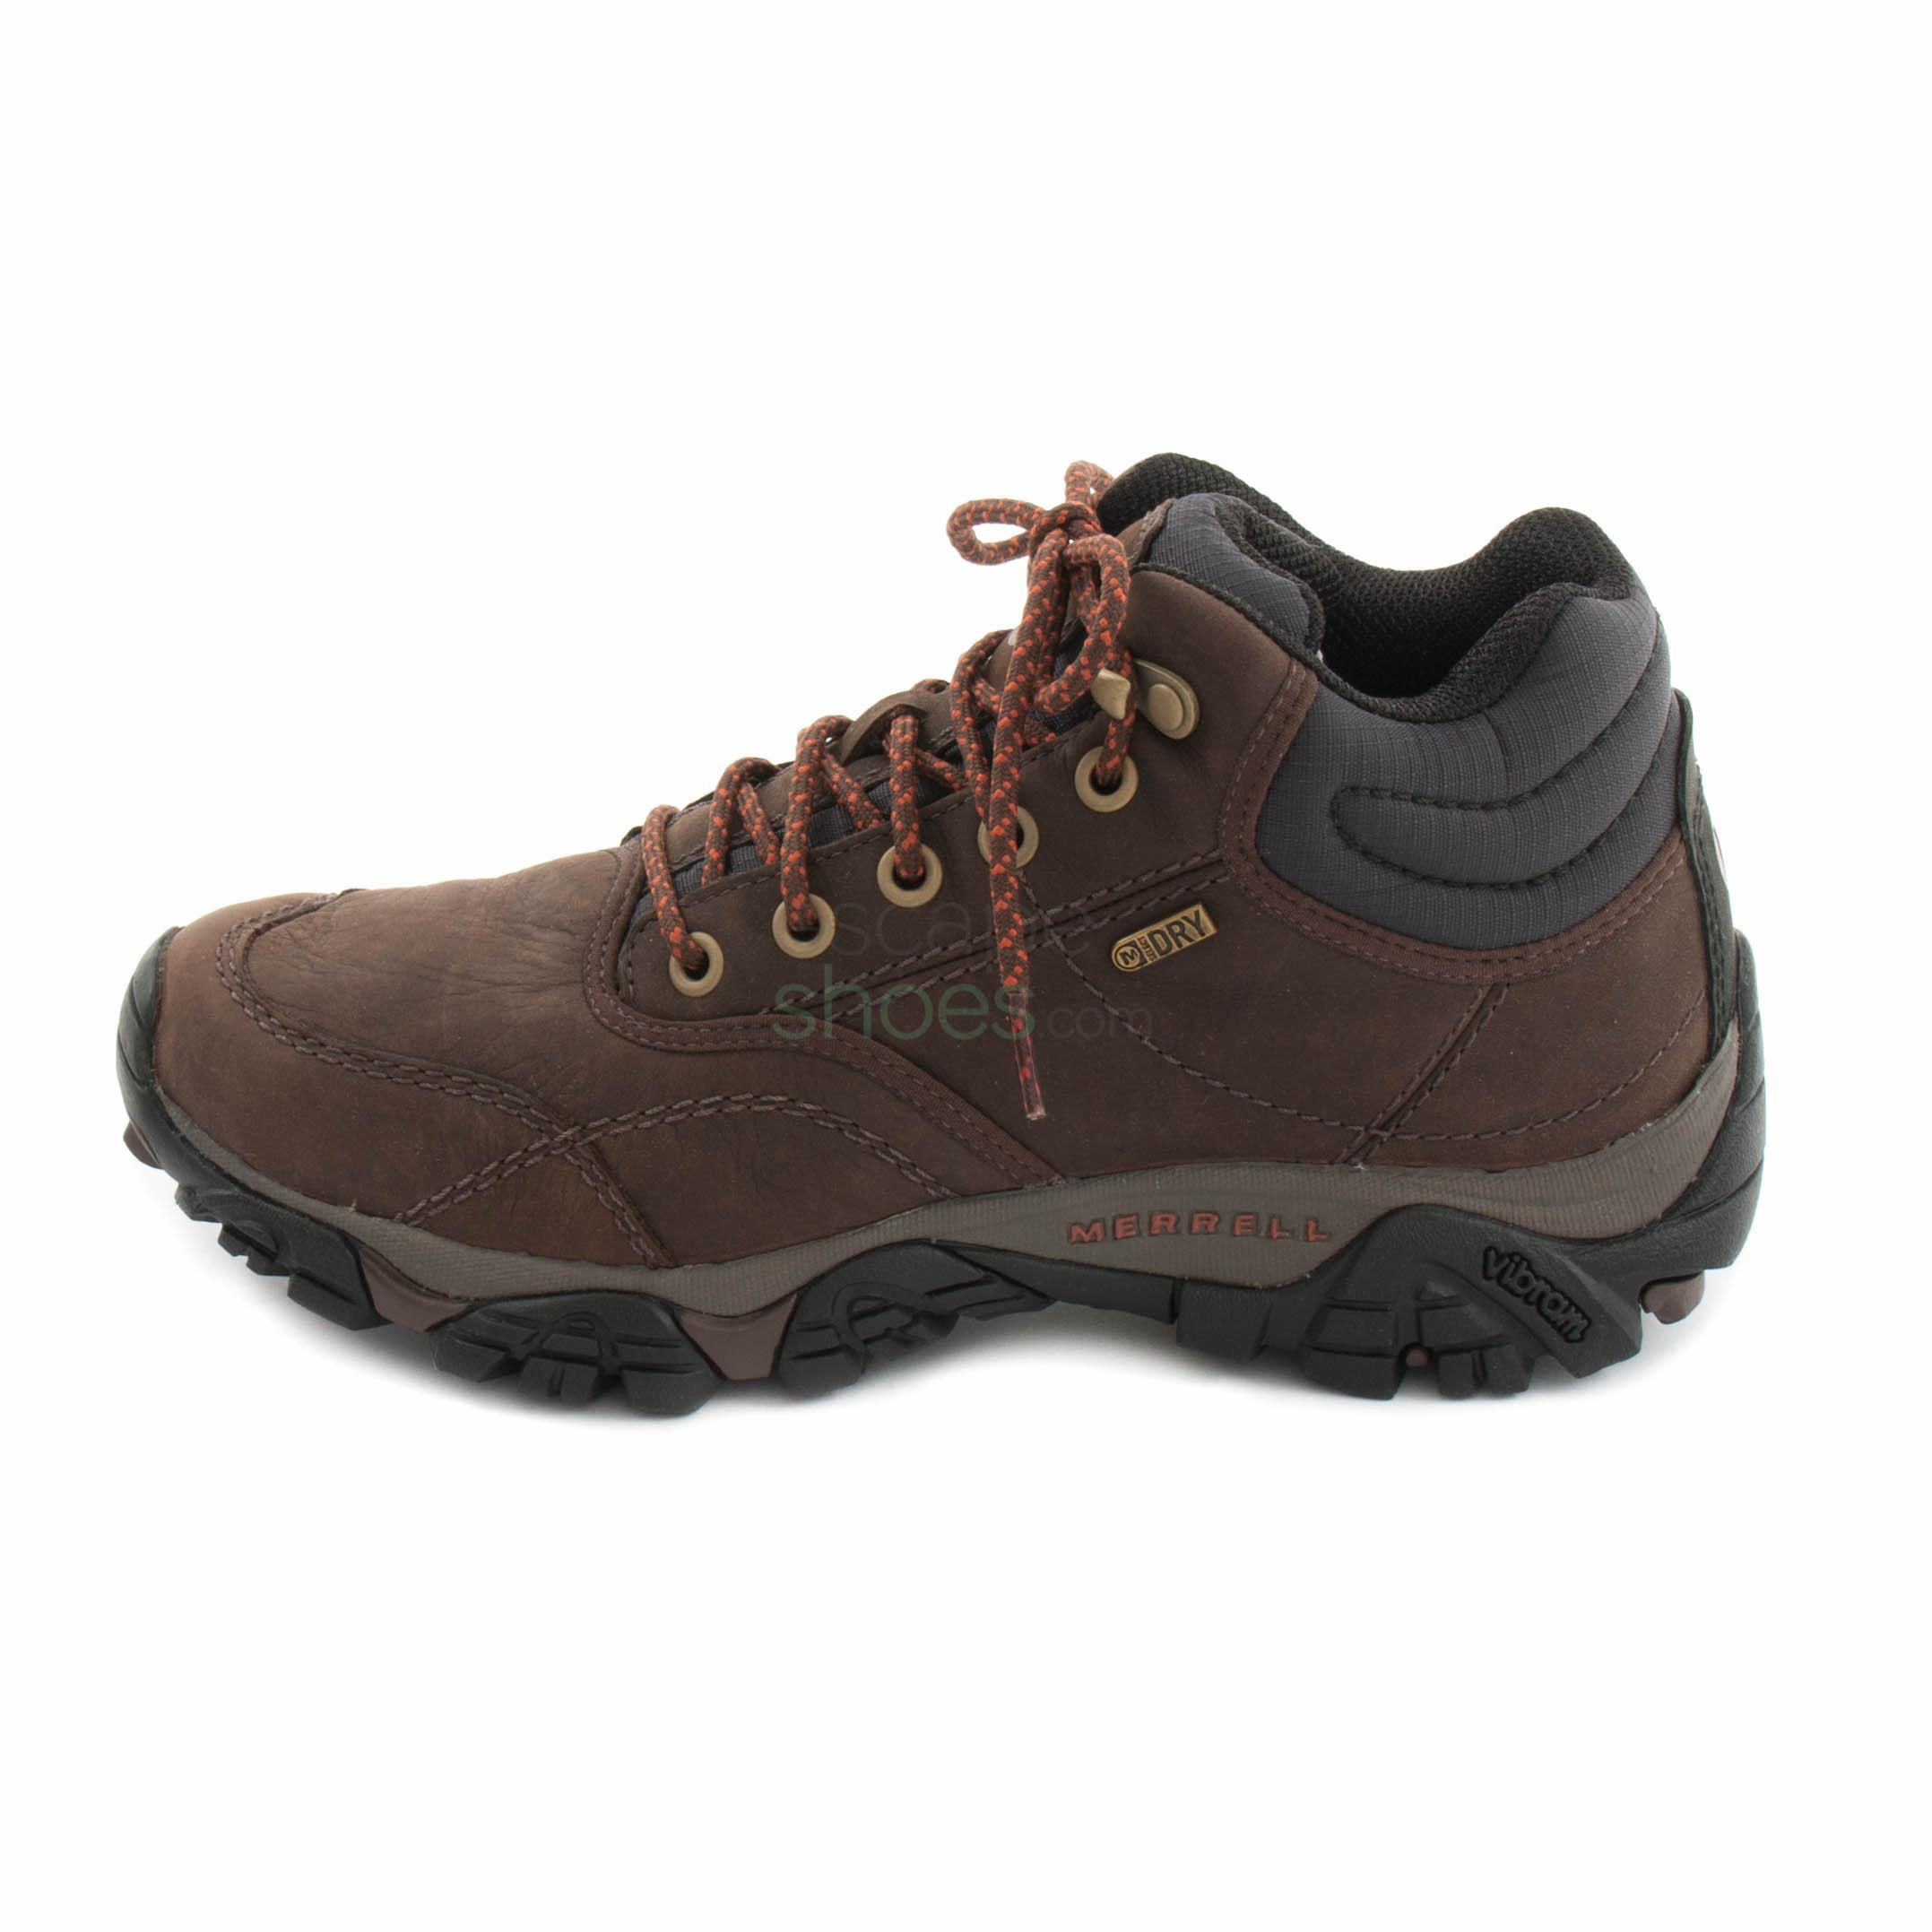 Boots MERRELL Moab Rover Mid Waterproof